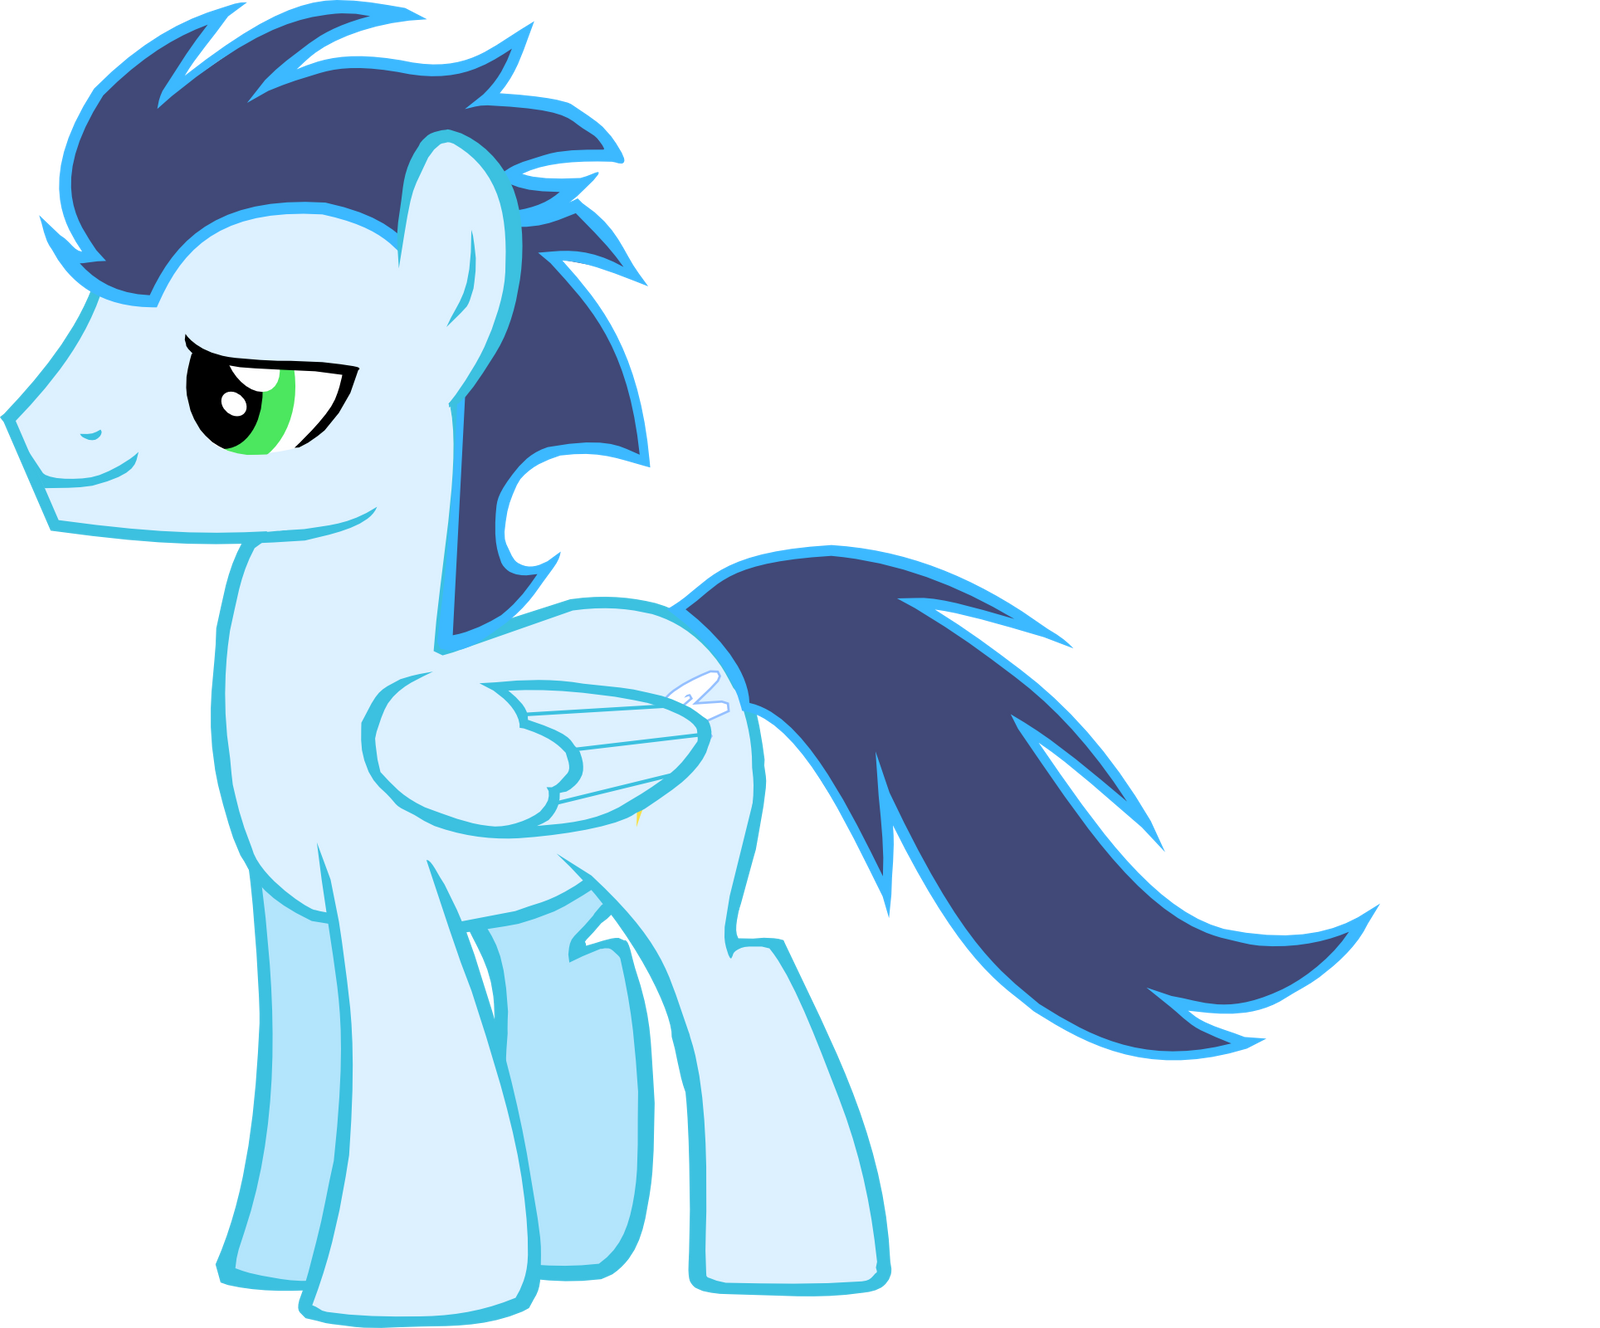 Soarin' Vector by thecarbonmaestro on DeviantArt